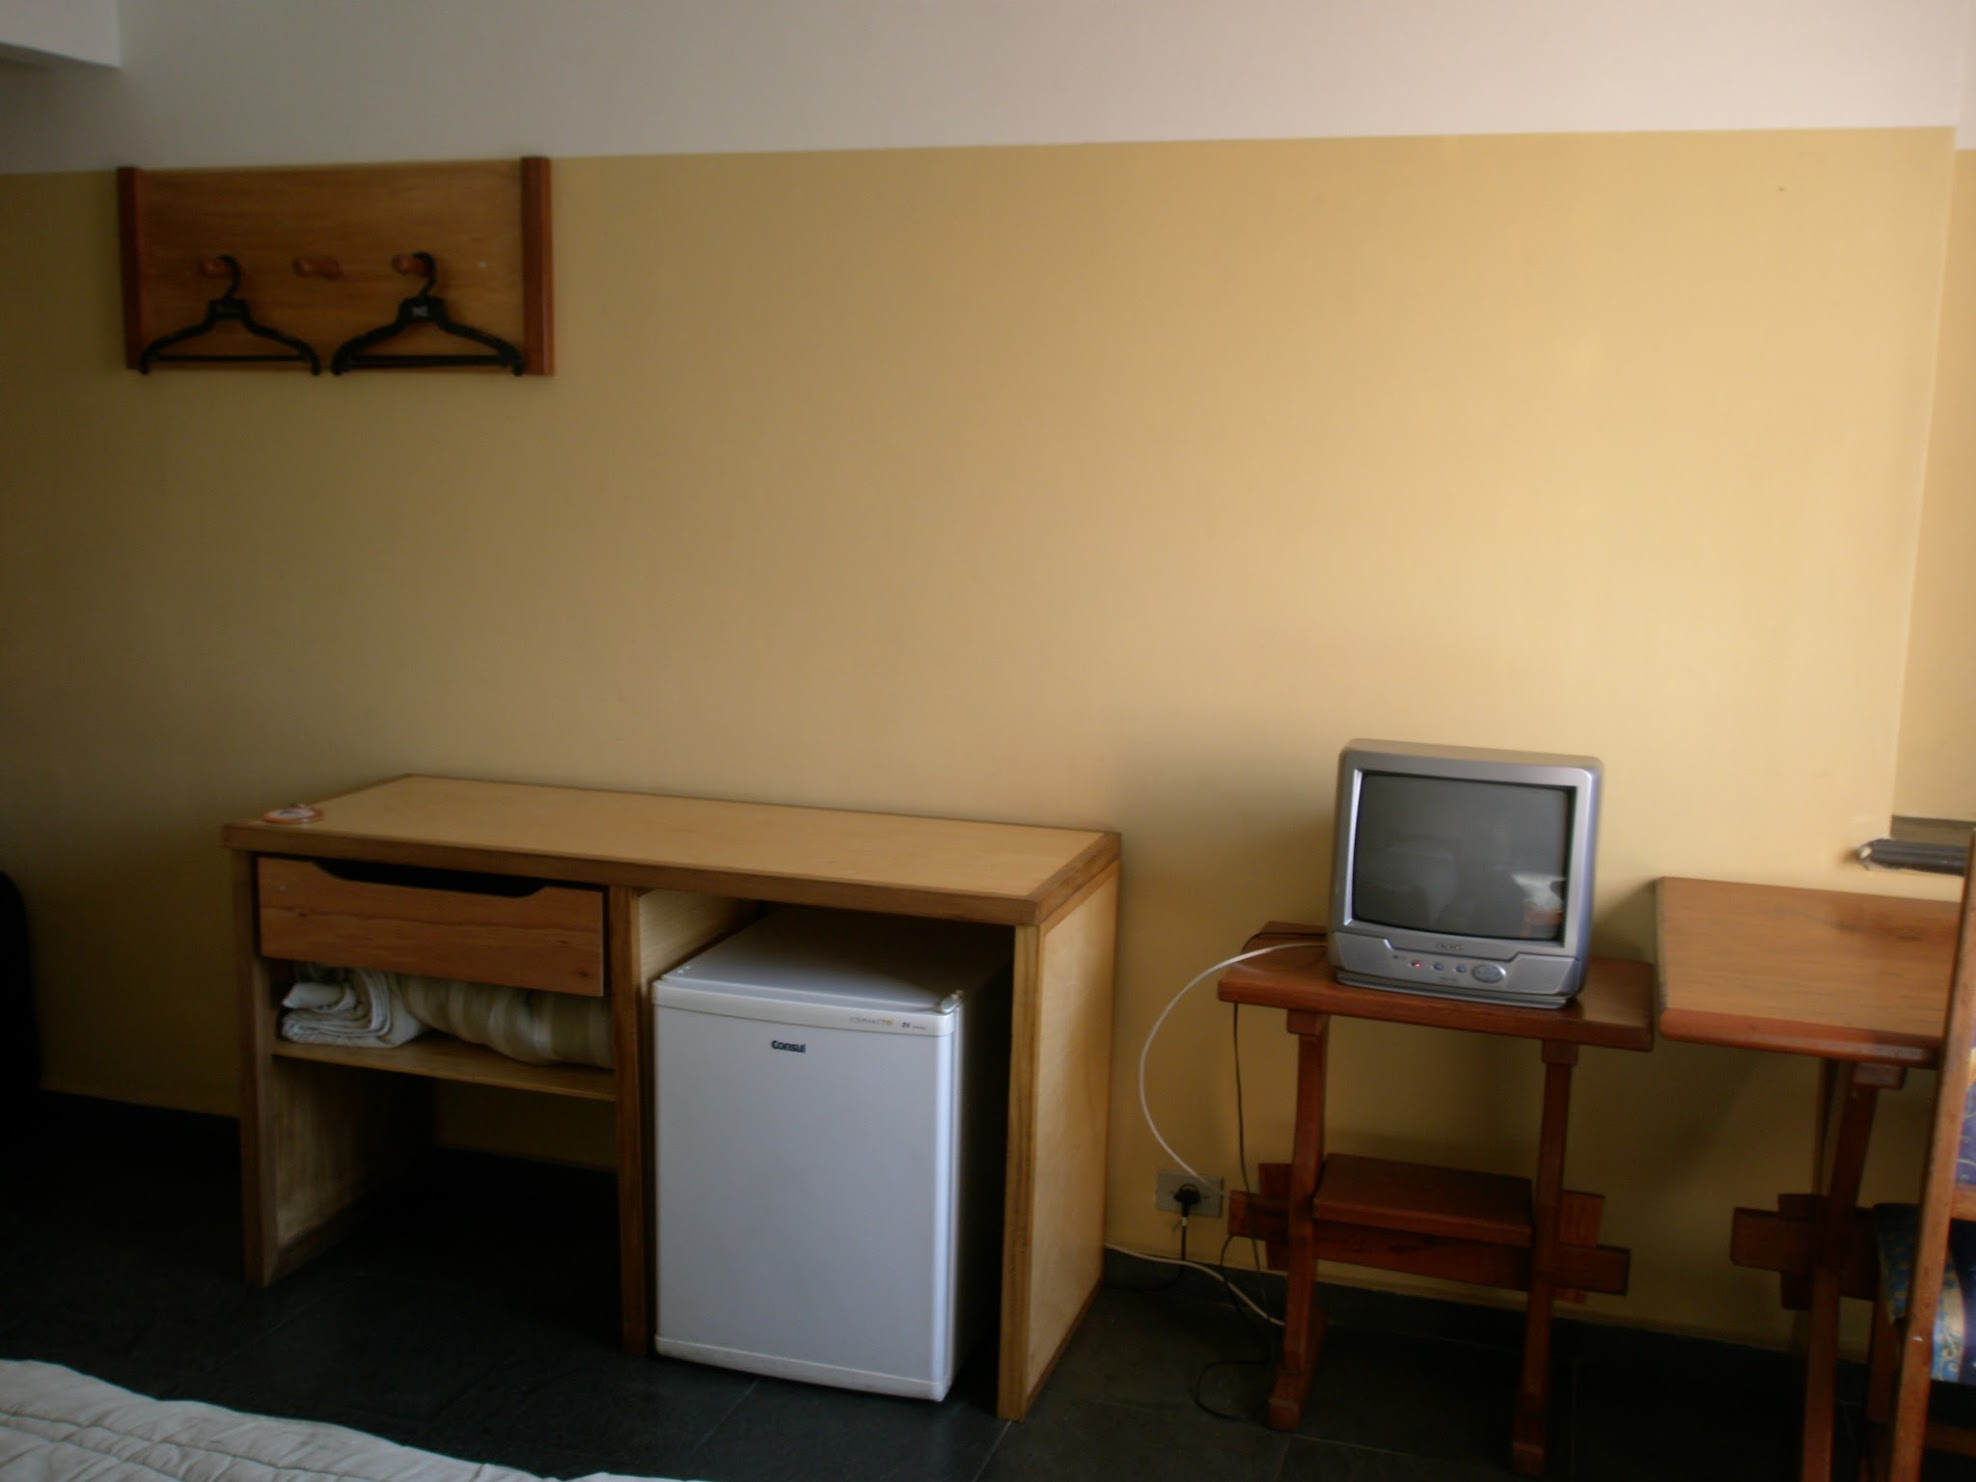 A yellow wall of a hostel room. A table and drawer with under counter fridge. A a grey TV on a stand. Hangers on hooks on higher on the wall.